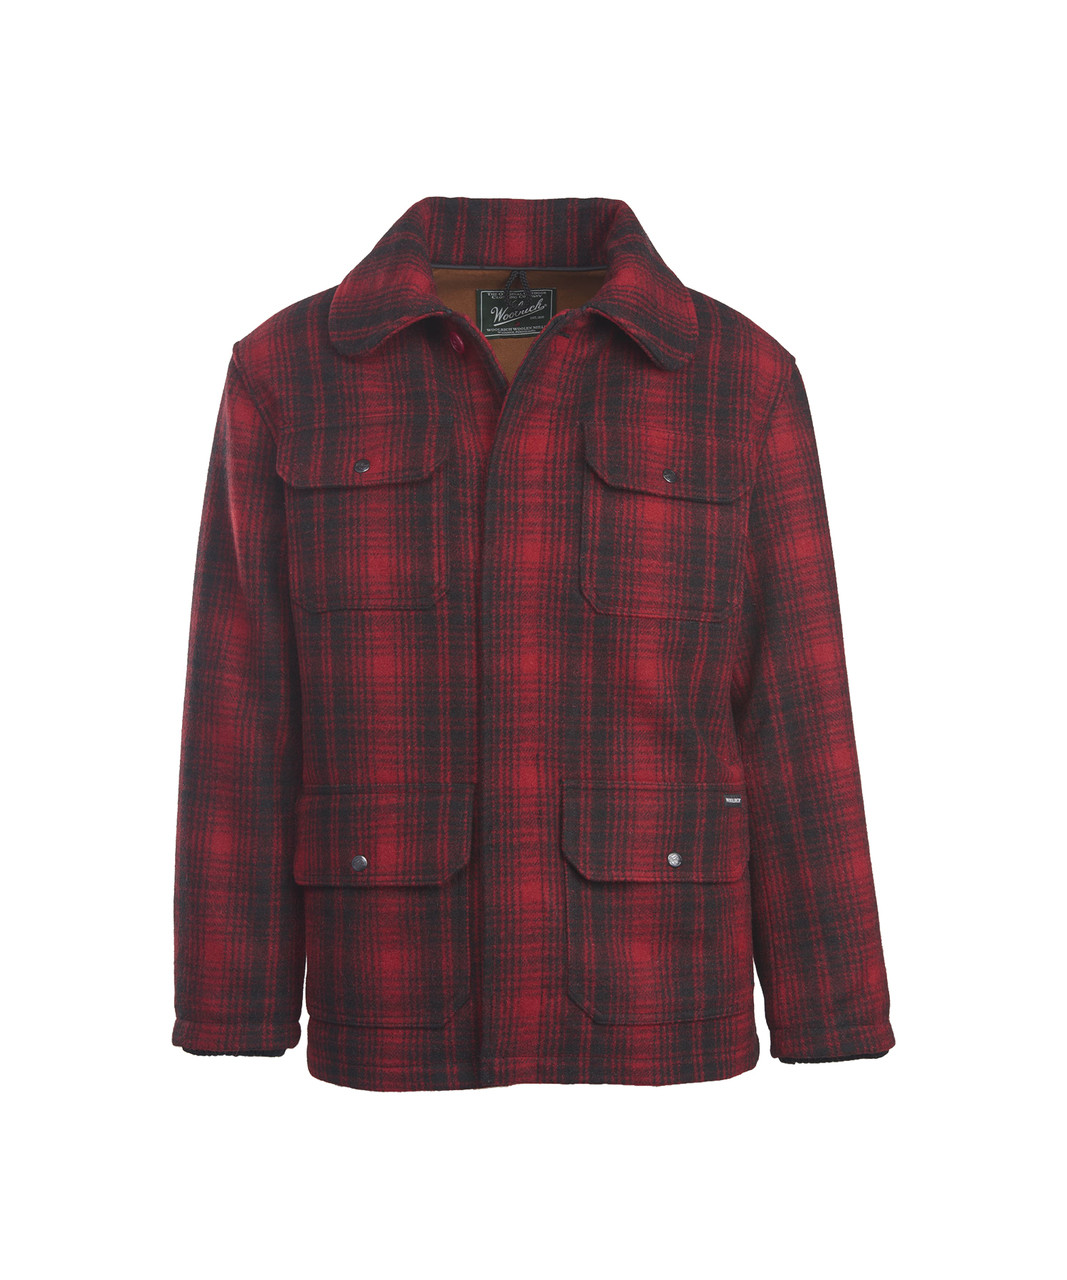 dating woolrich clothing